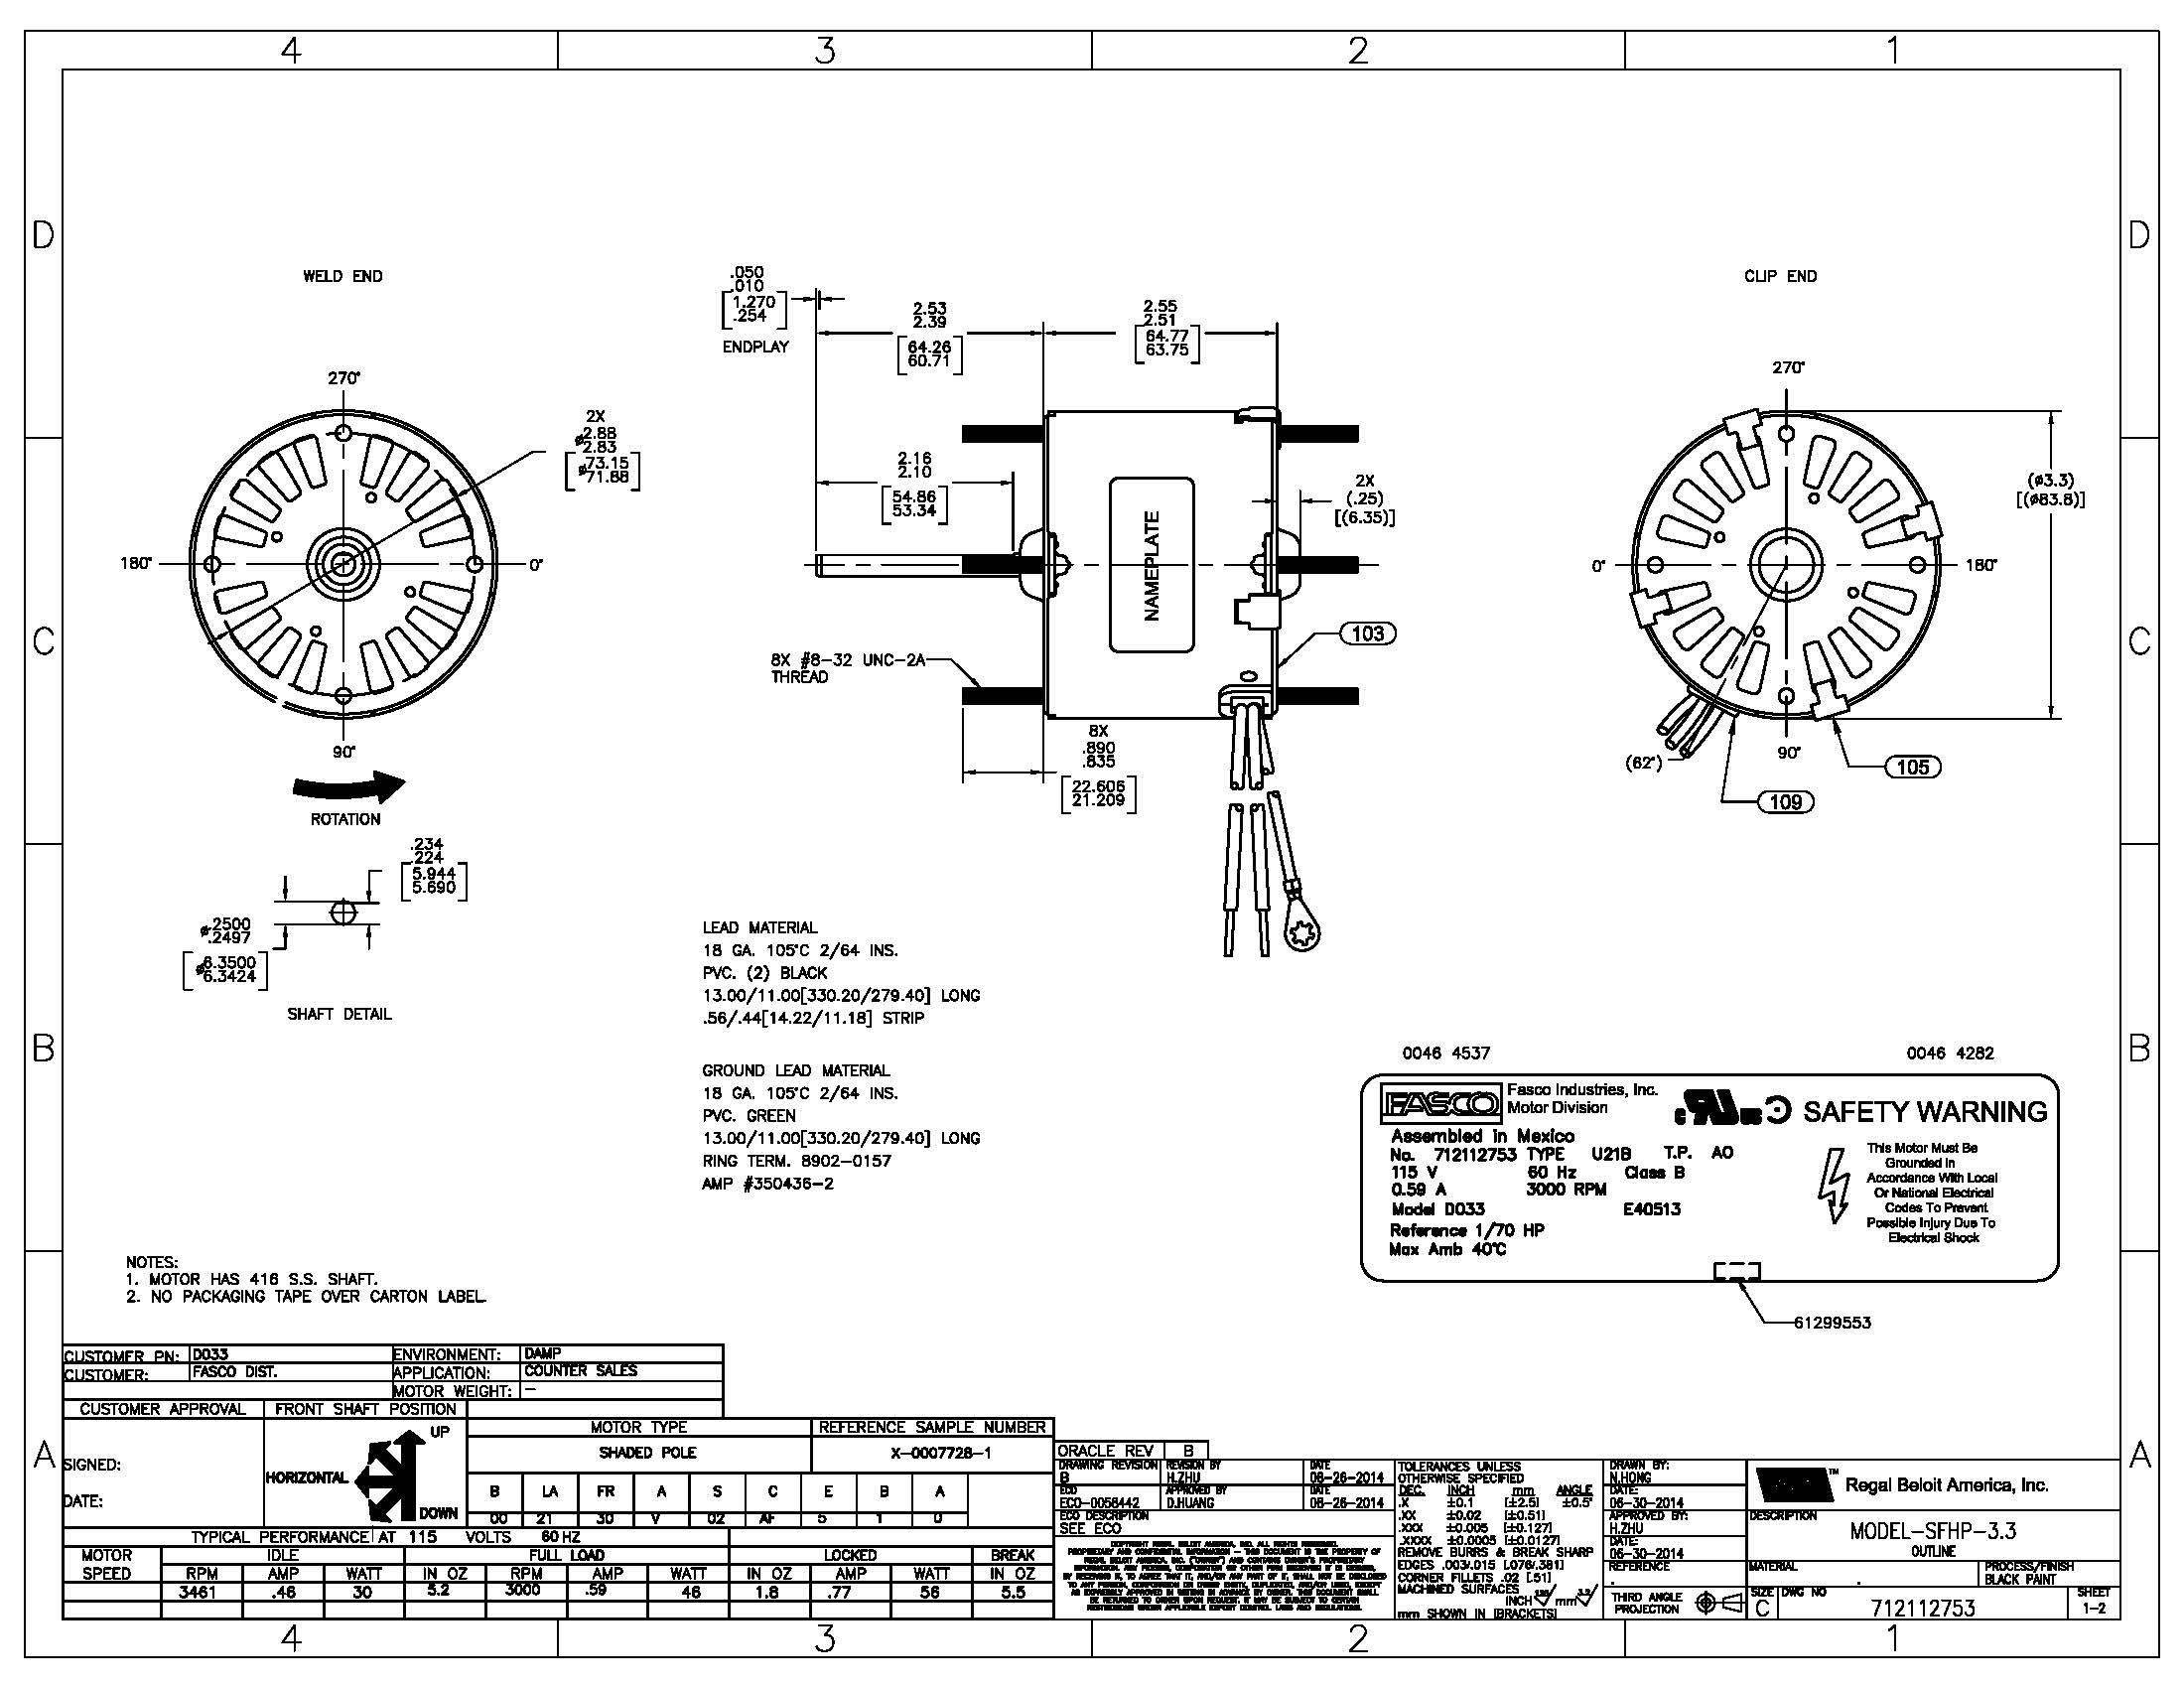 General Electric Ac Motor Wiring Diagram from wholefoodsonabudget.com